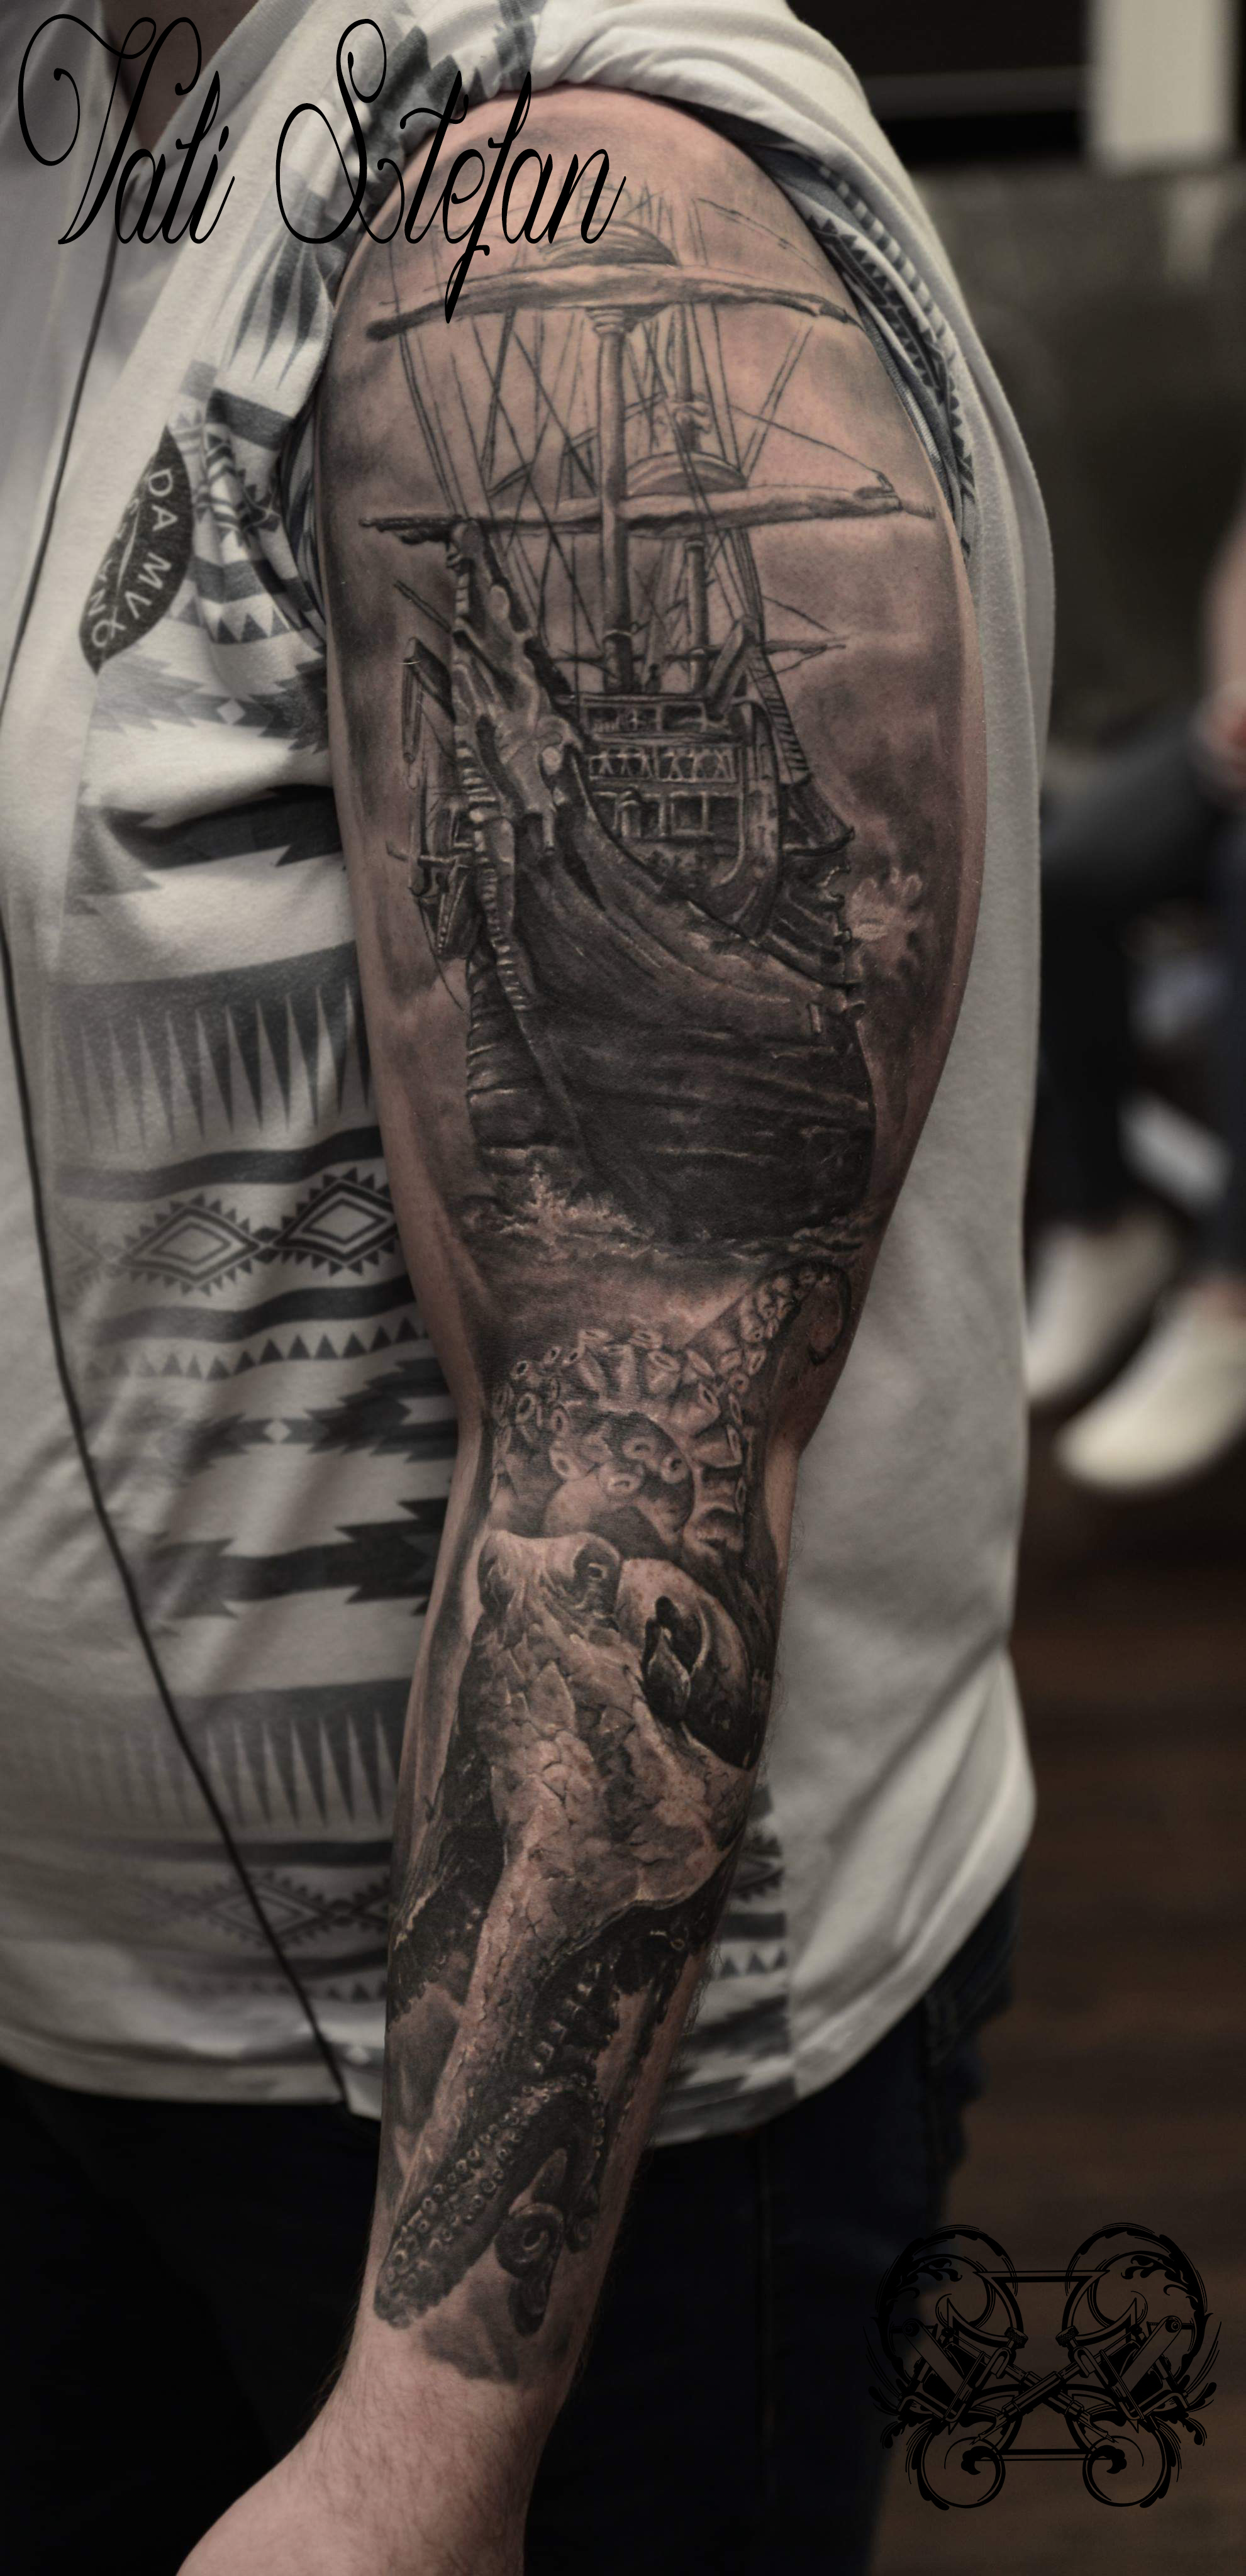 Vali pirate ship sleeve.jpg